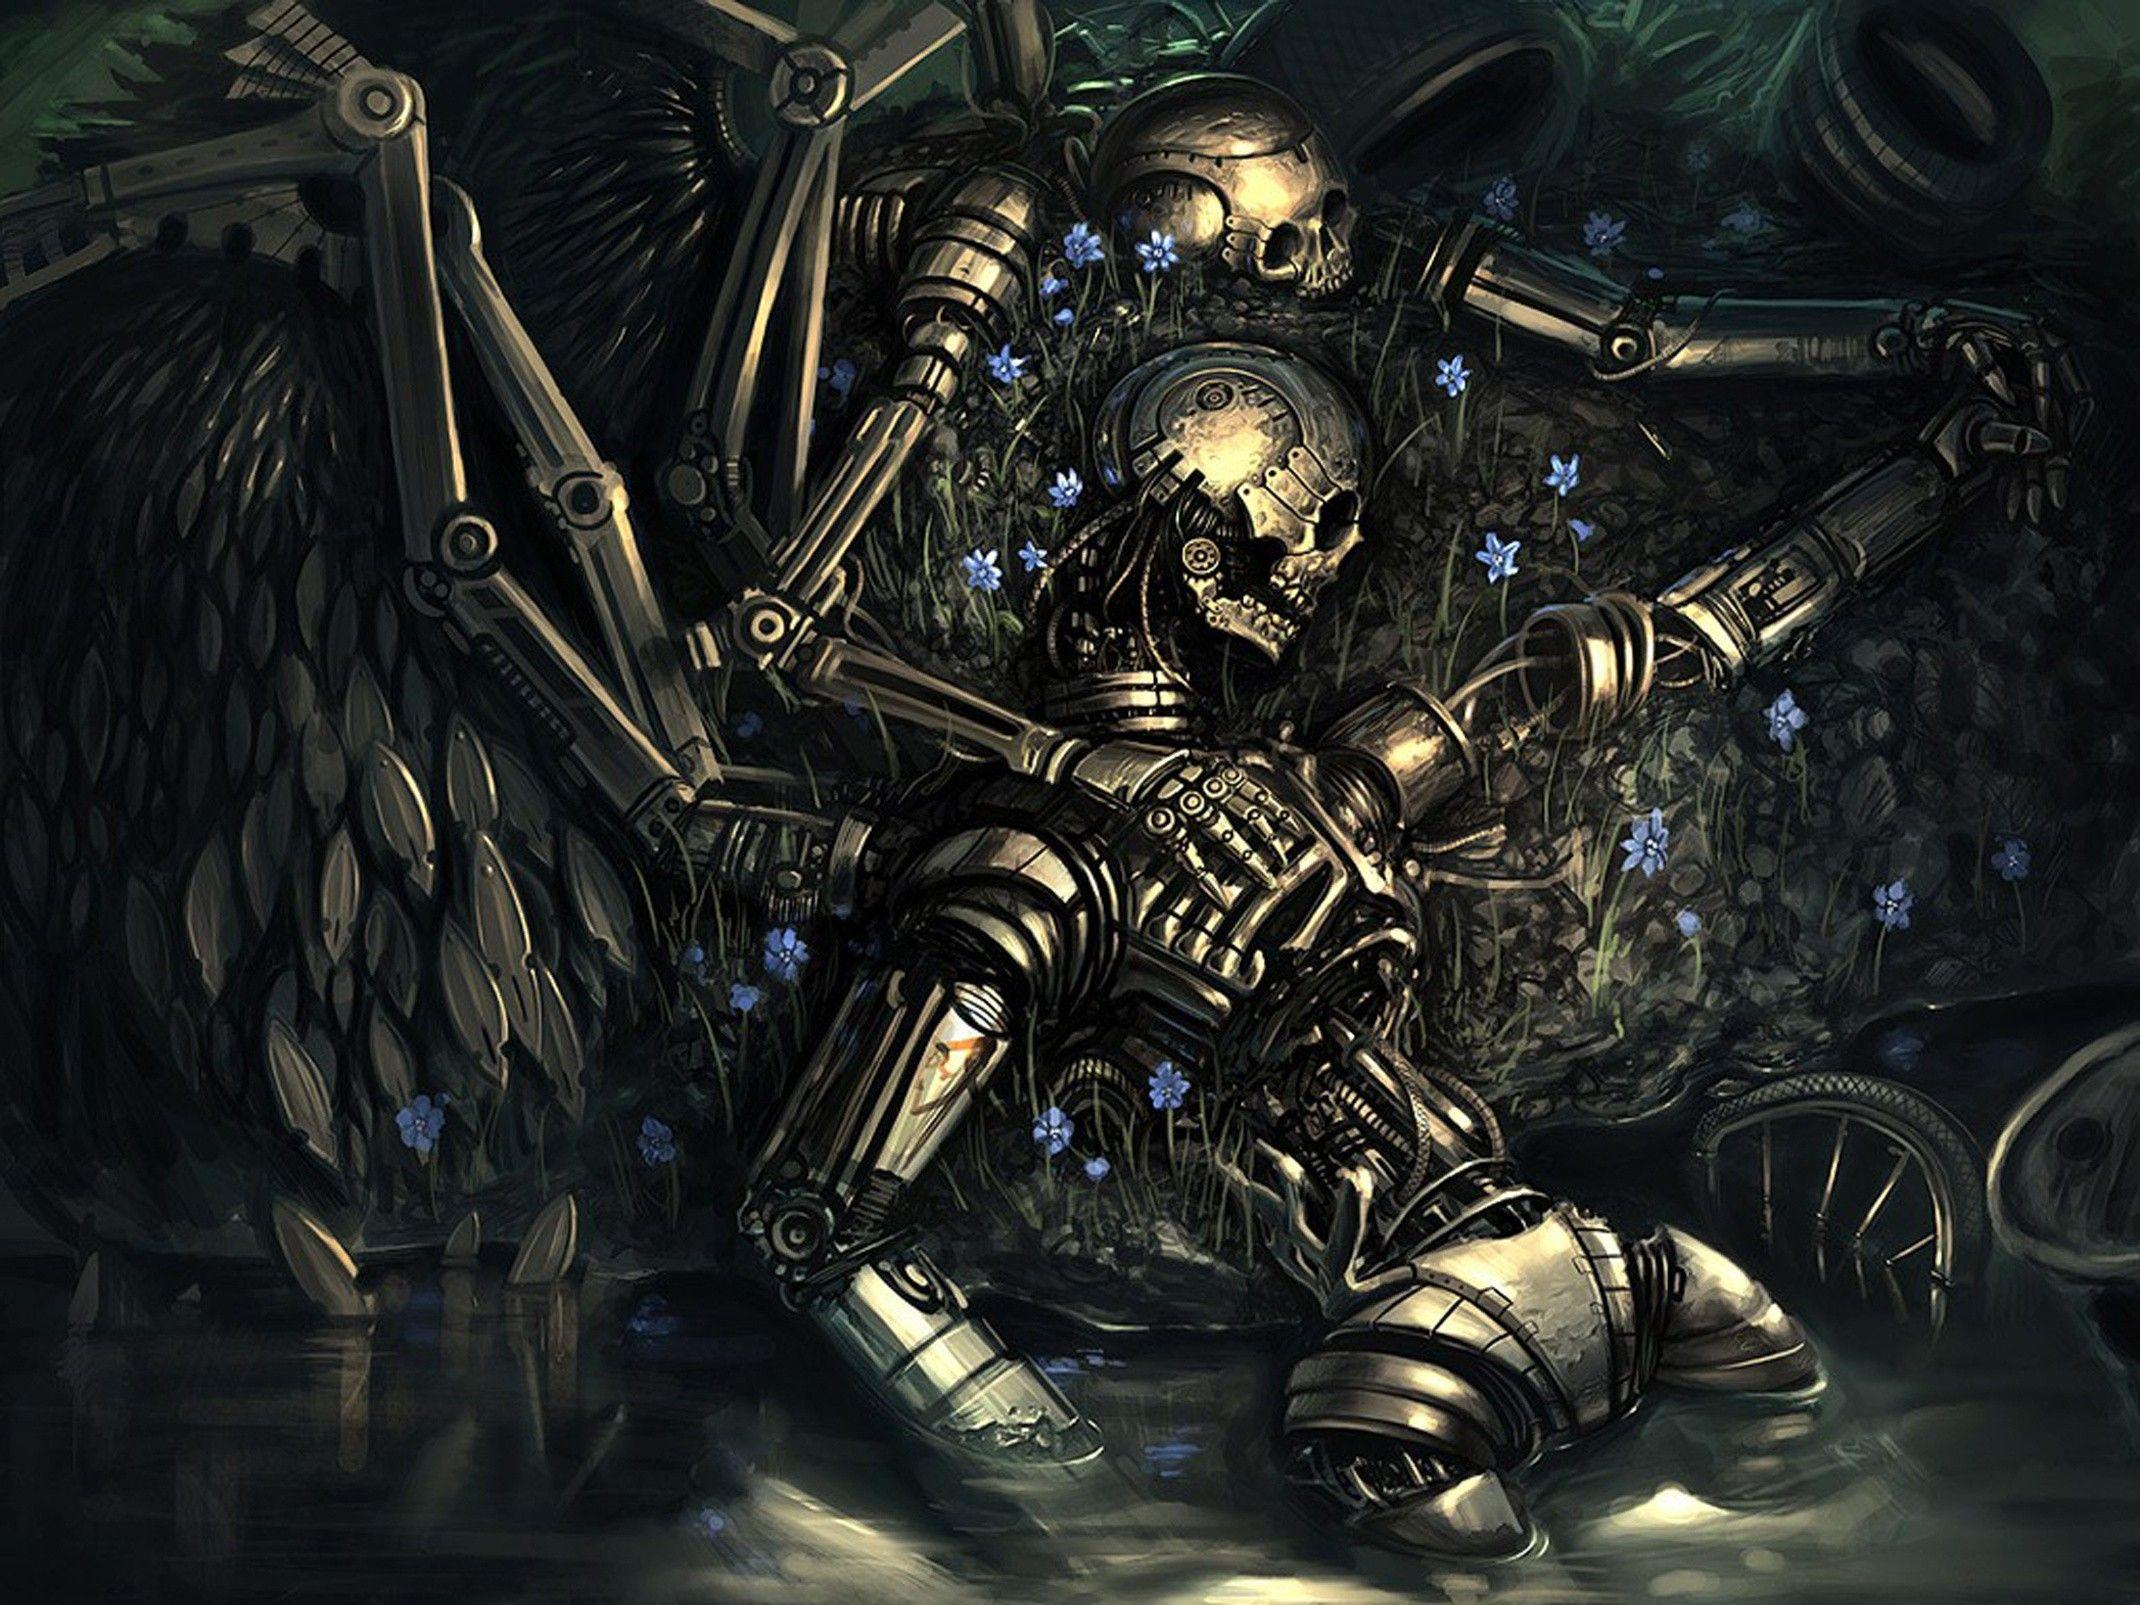 design, robots, flowers, death, love, artwork, skeletons, couple